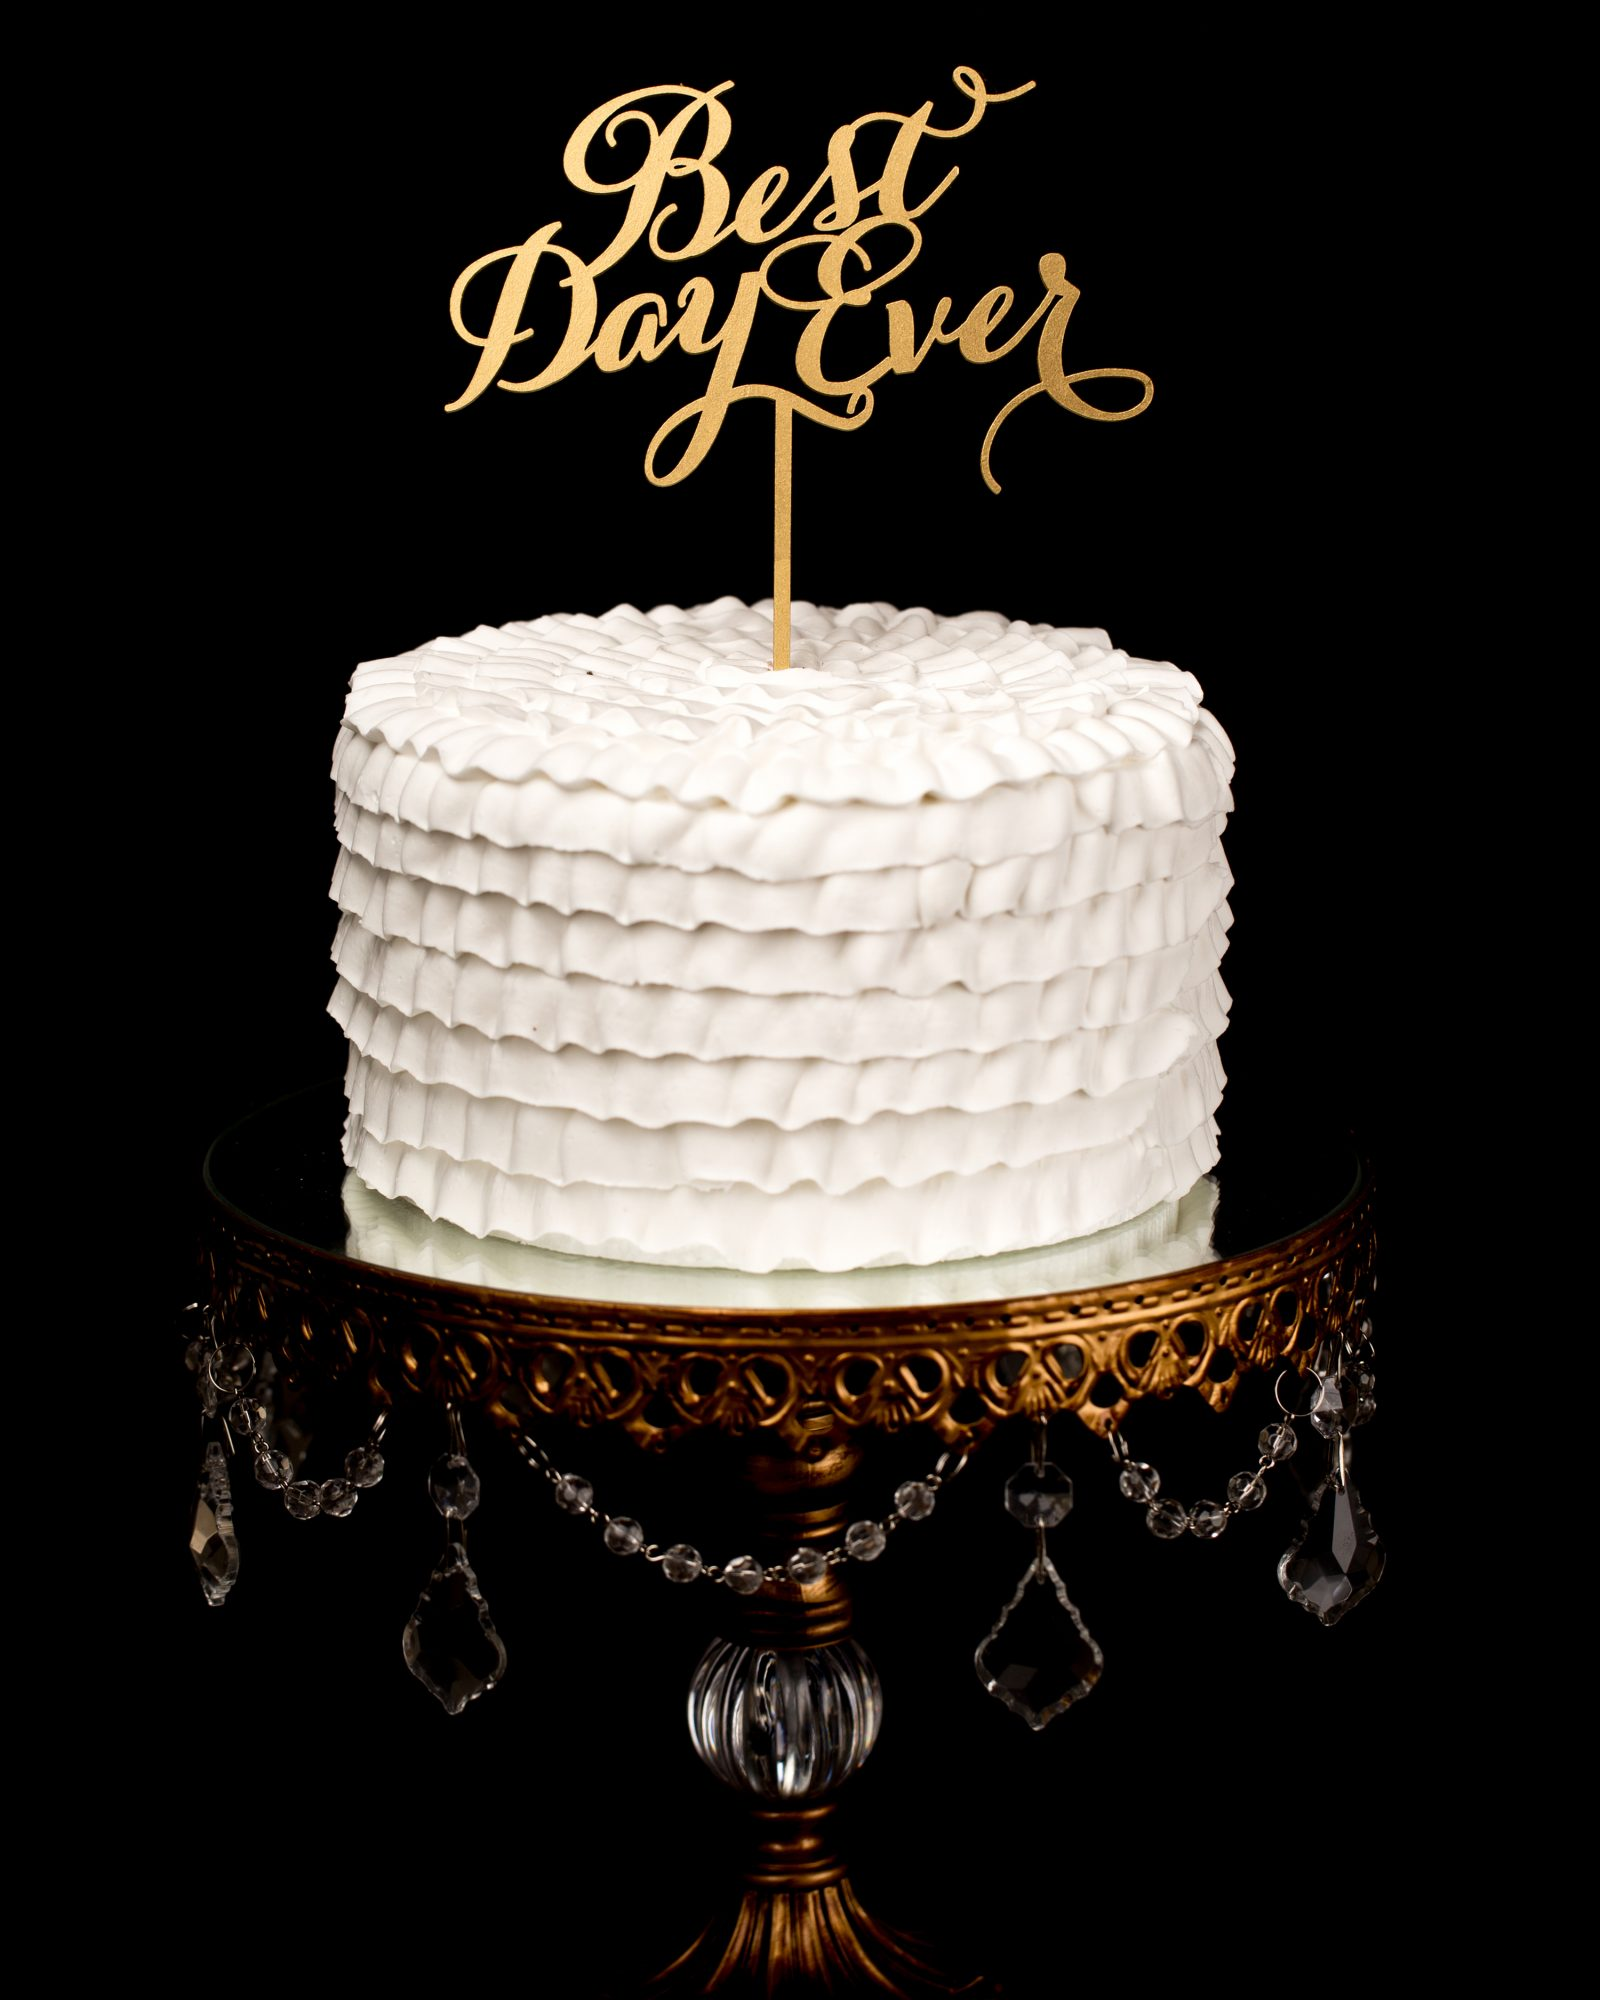 cake-toppers-better-off-wed-best-day-ever-0814.jpg